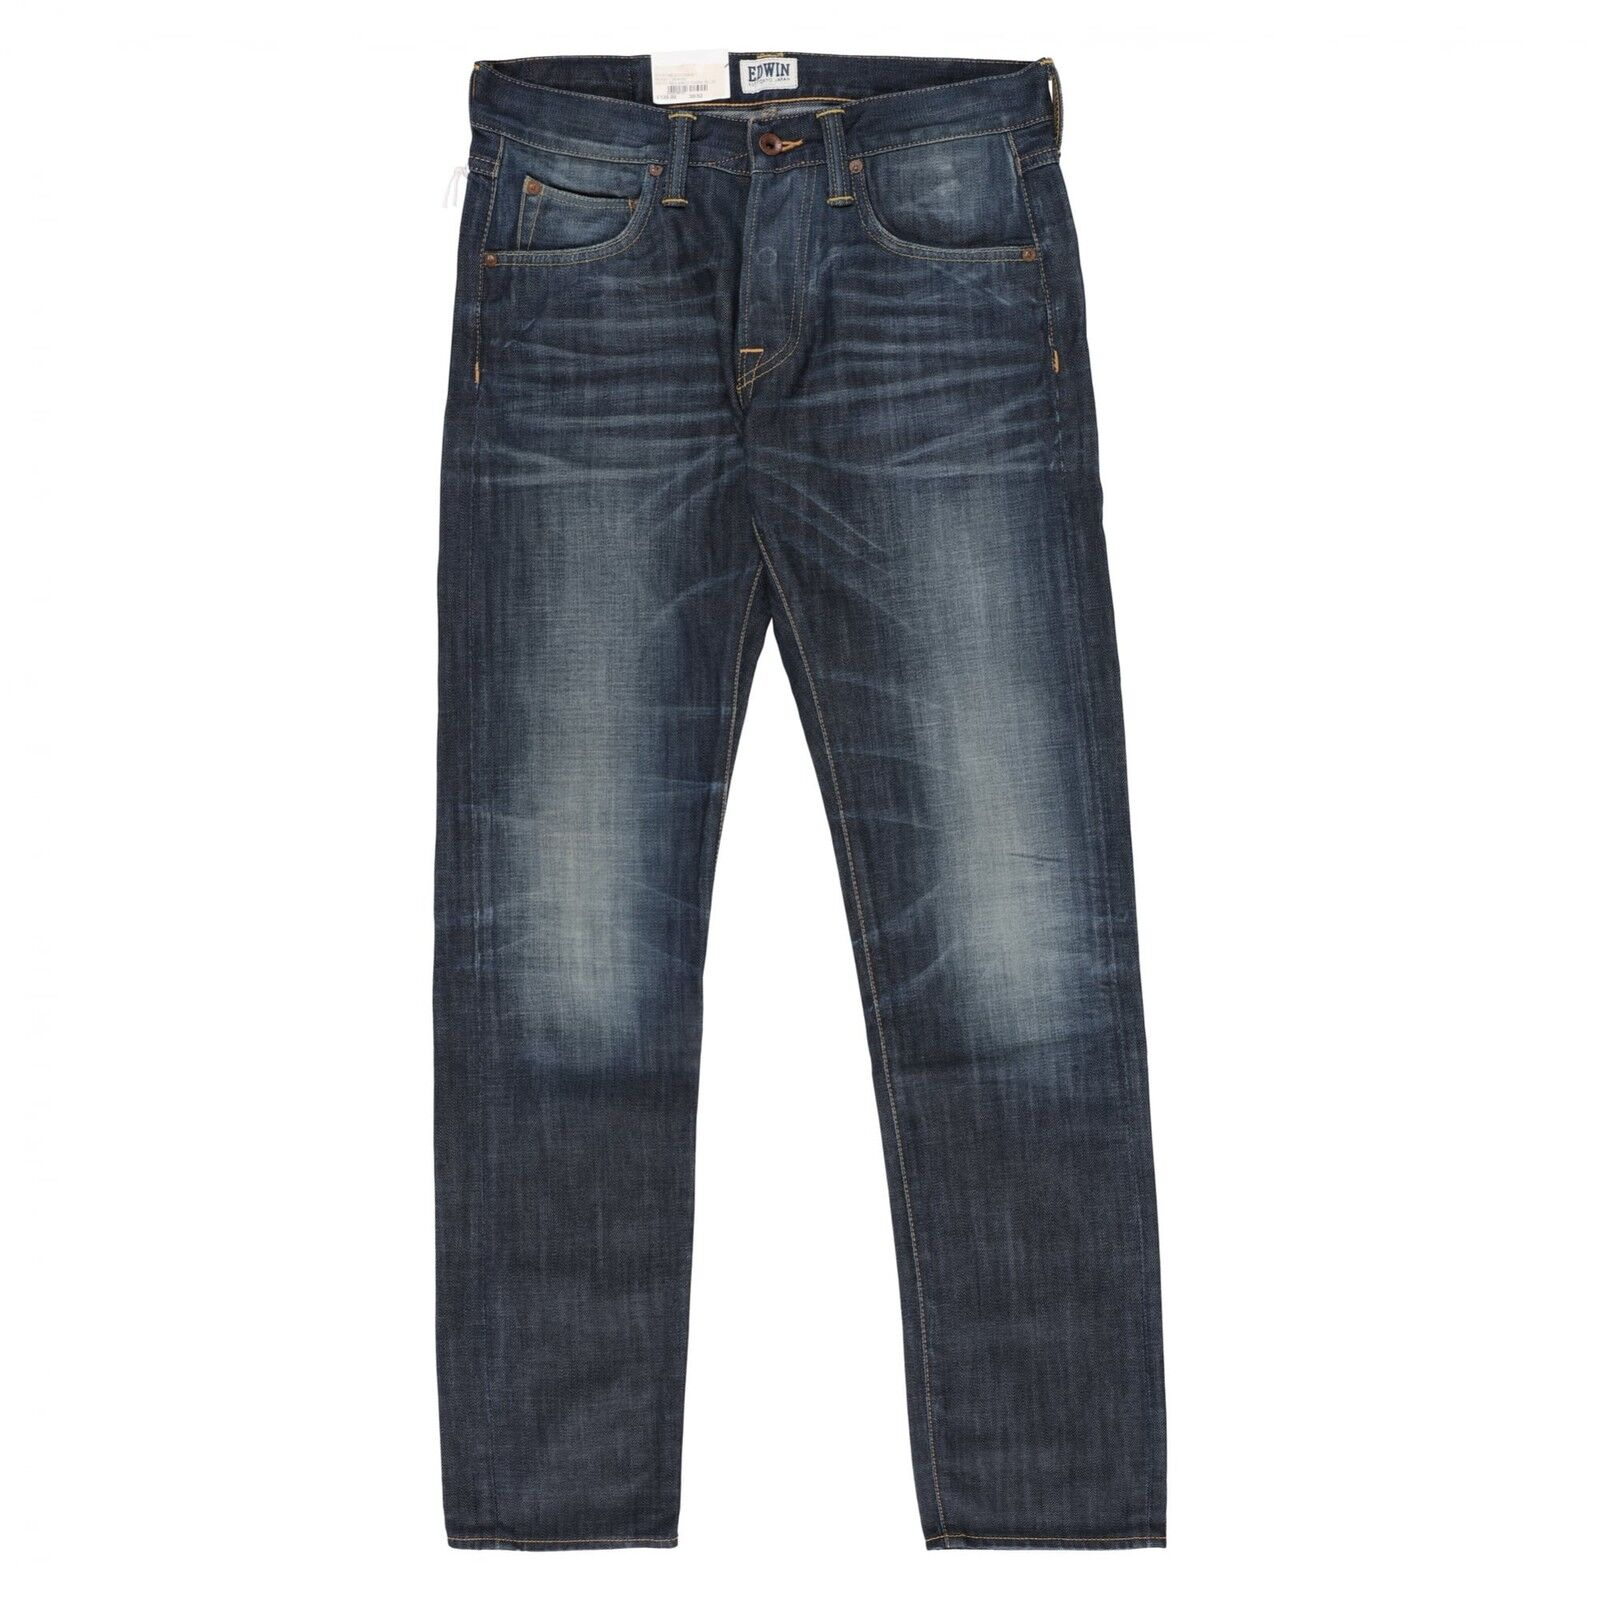 Edwin Denim ED-55 Relaxed Jeans - Rodeo Wash